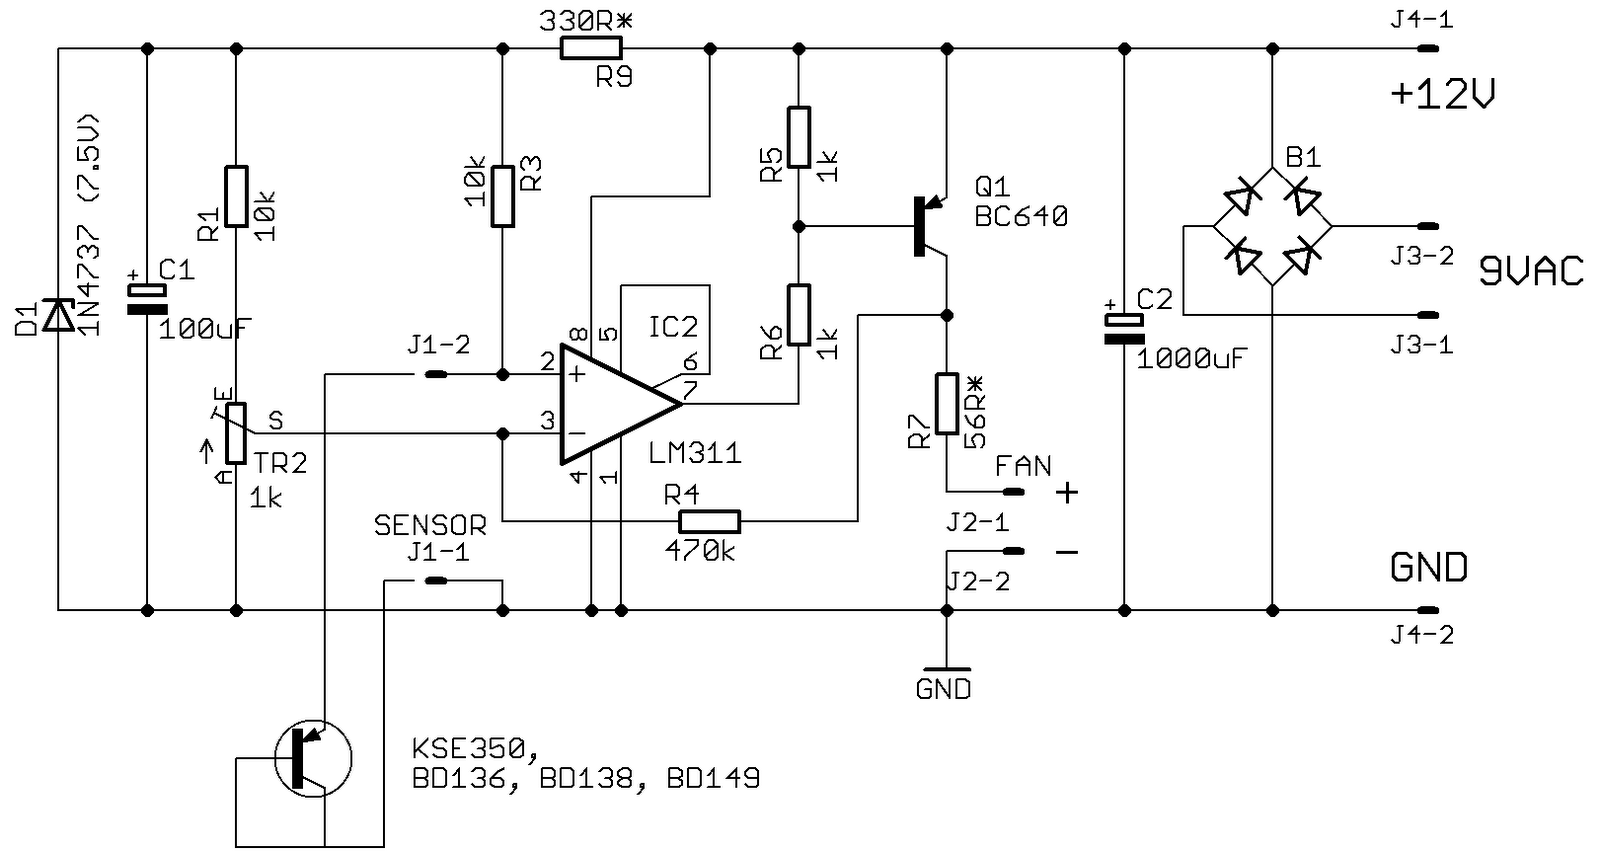 Diyfan Adjustable Lab Power Supply 12vdc Regulated With Schematic Diagram Share The May Be Supplied Ac Or Dc Voltage But Not Both Simultaneously If Is Then B1 C2 And J3 Omitted